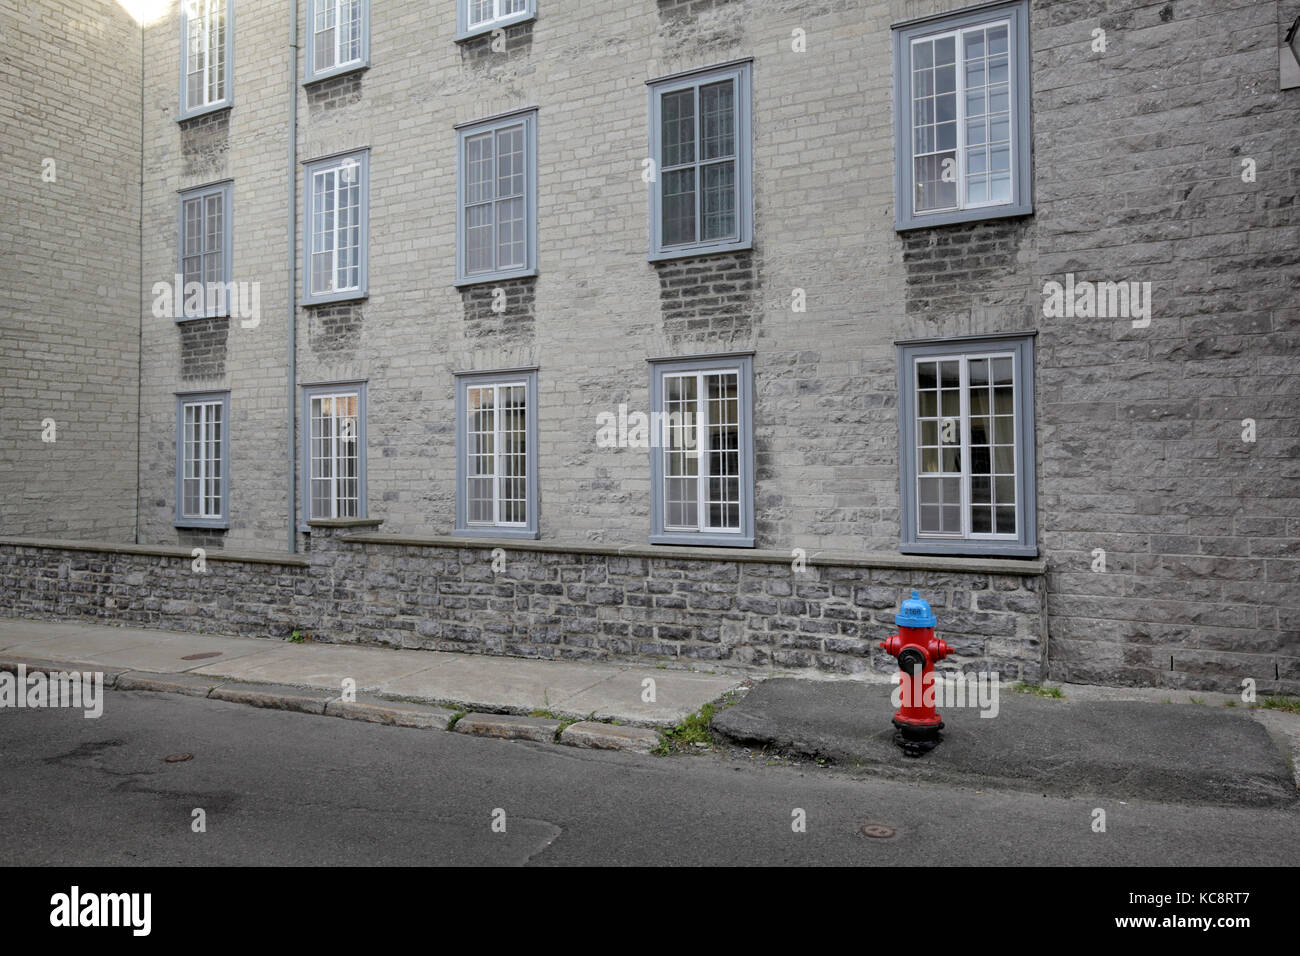 house with fire hydrant in Québec City, Canada - Stock Image